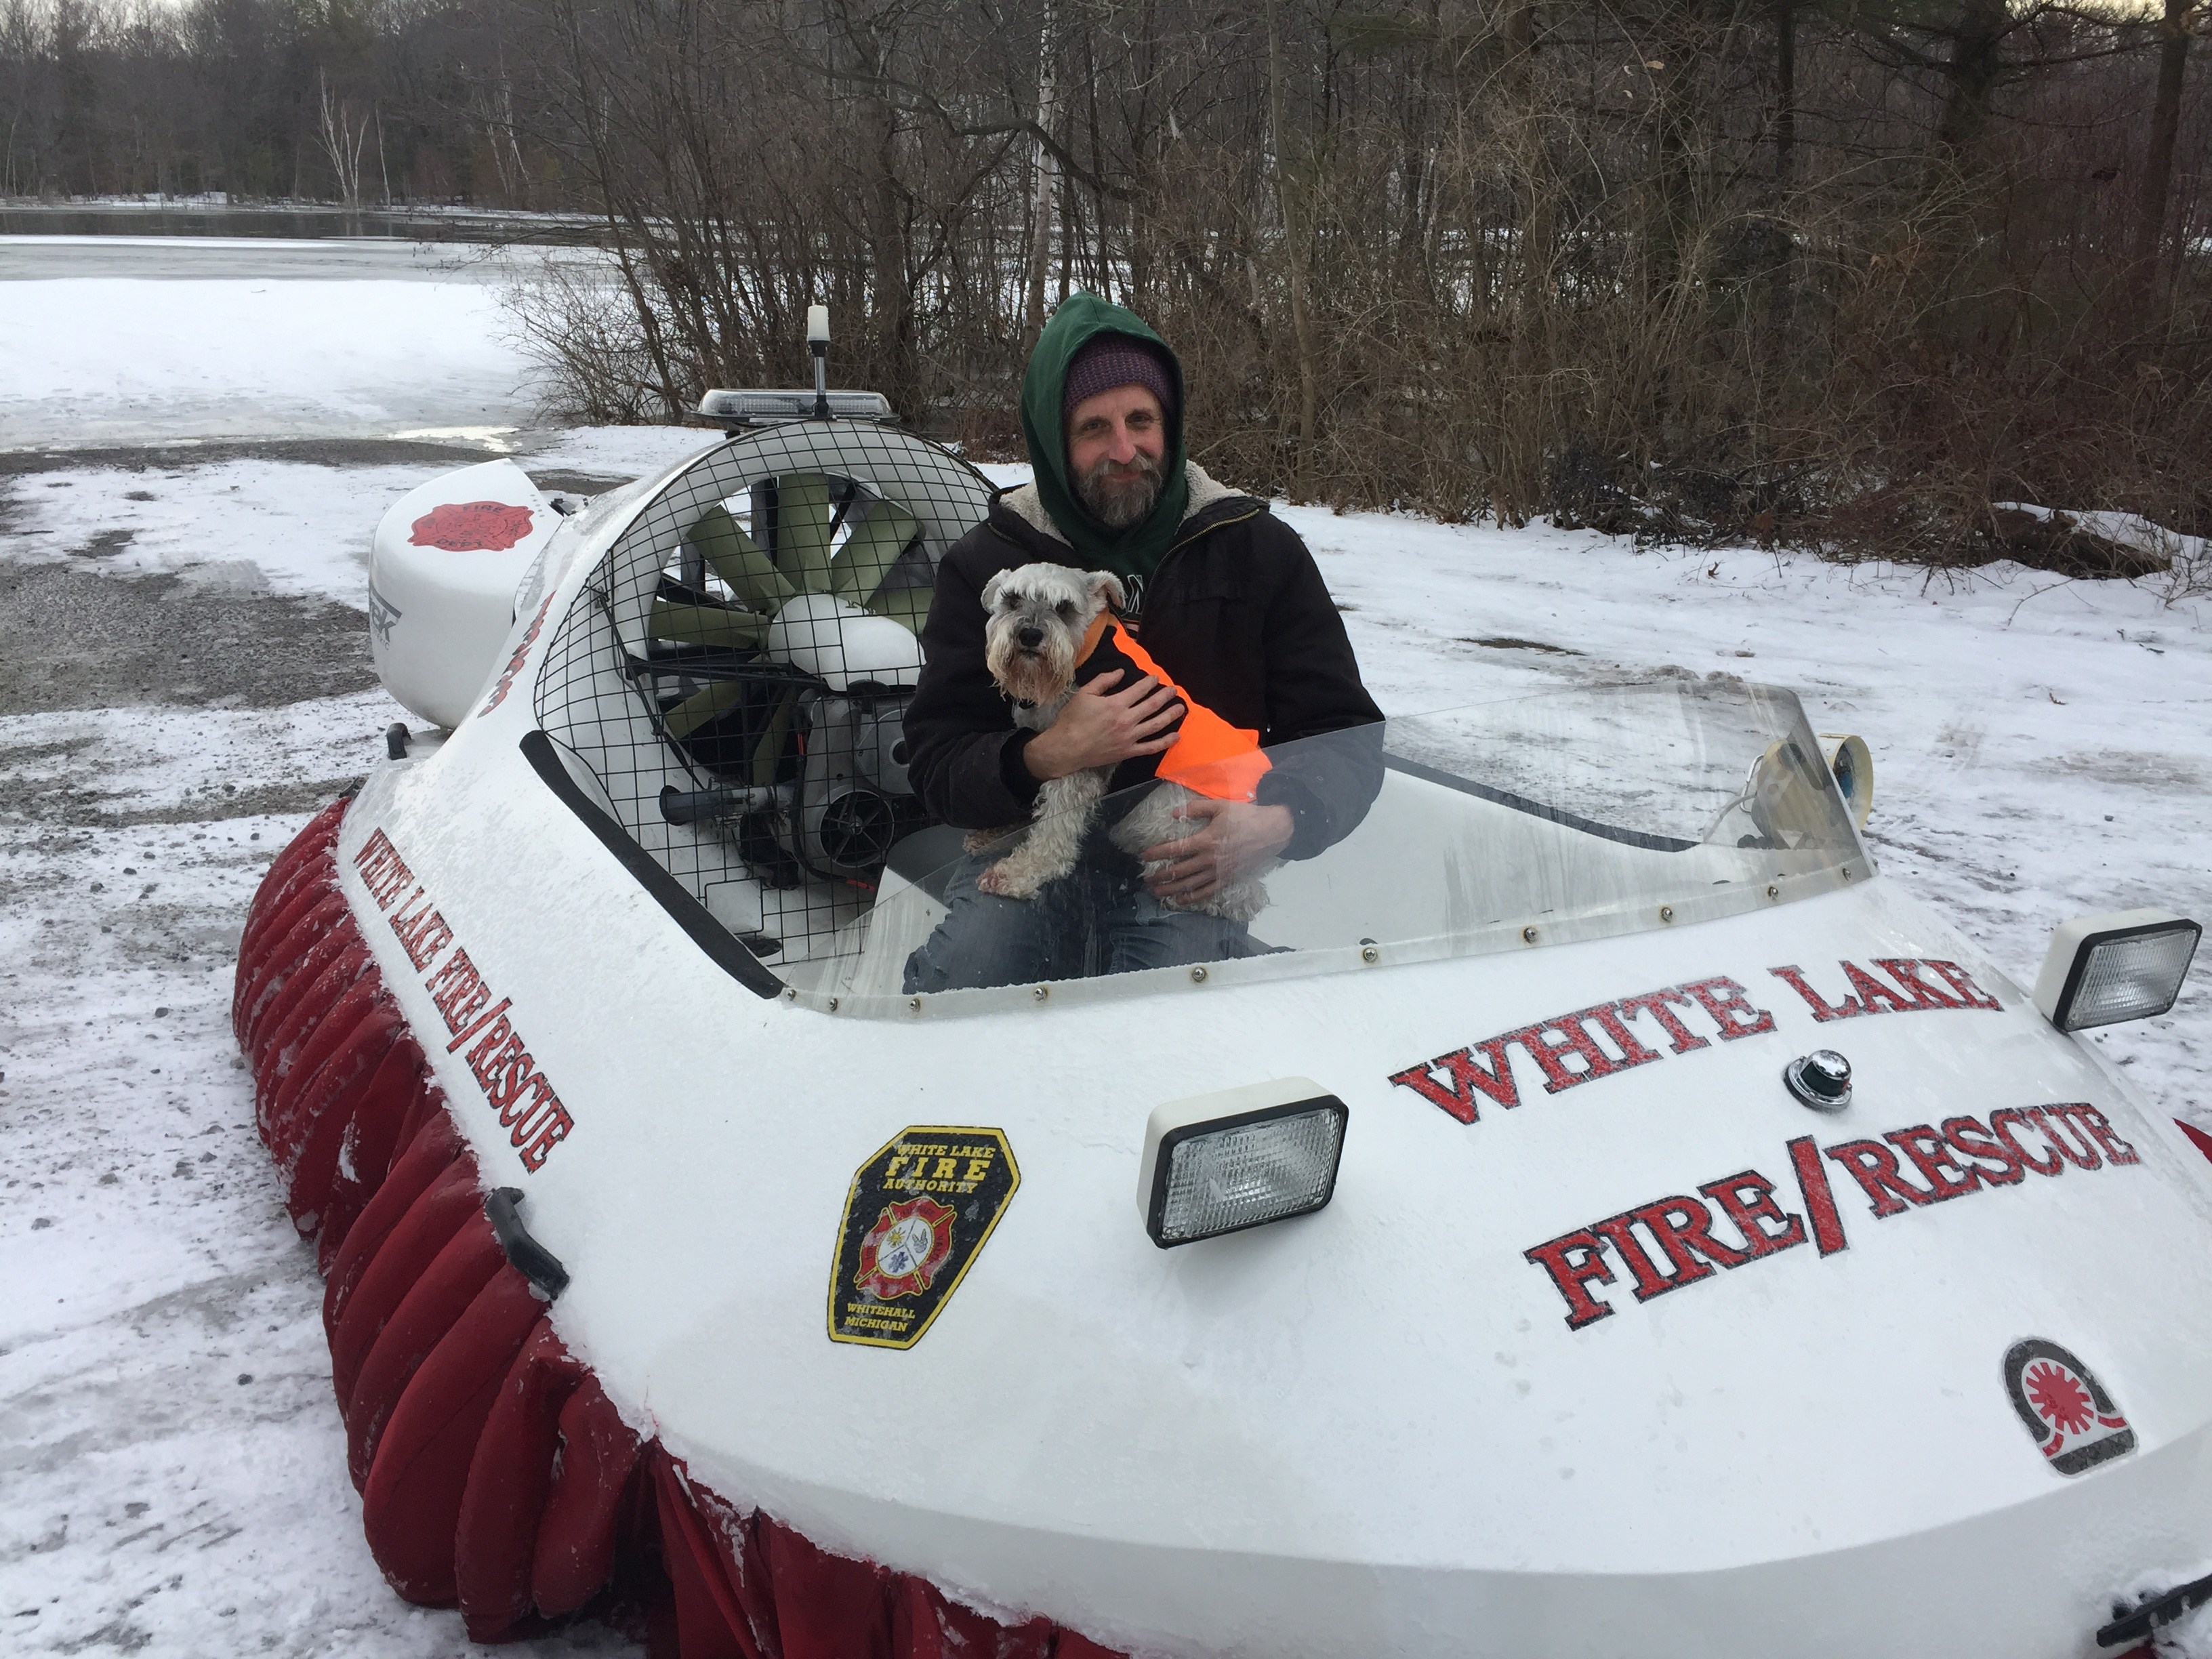 Shotzi & I in fire dpt hovercraft taken 2 days after I fell thru the ice